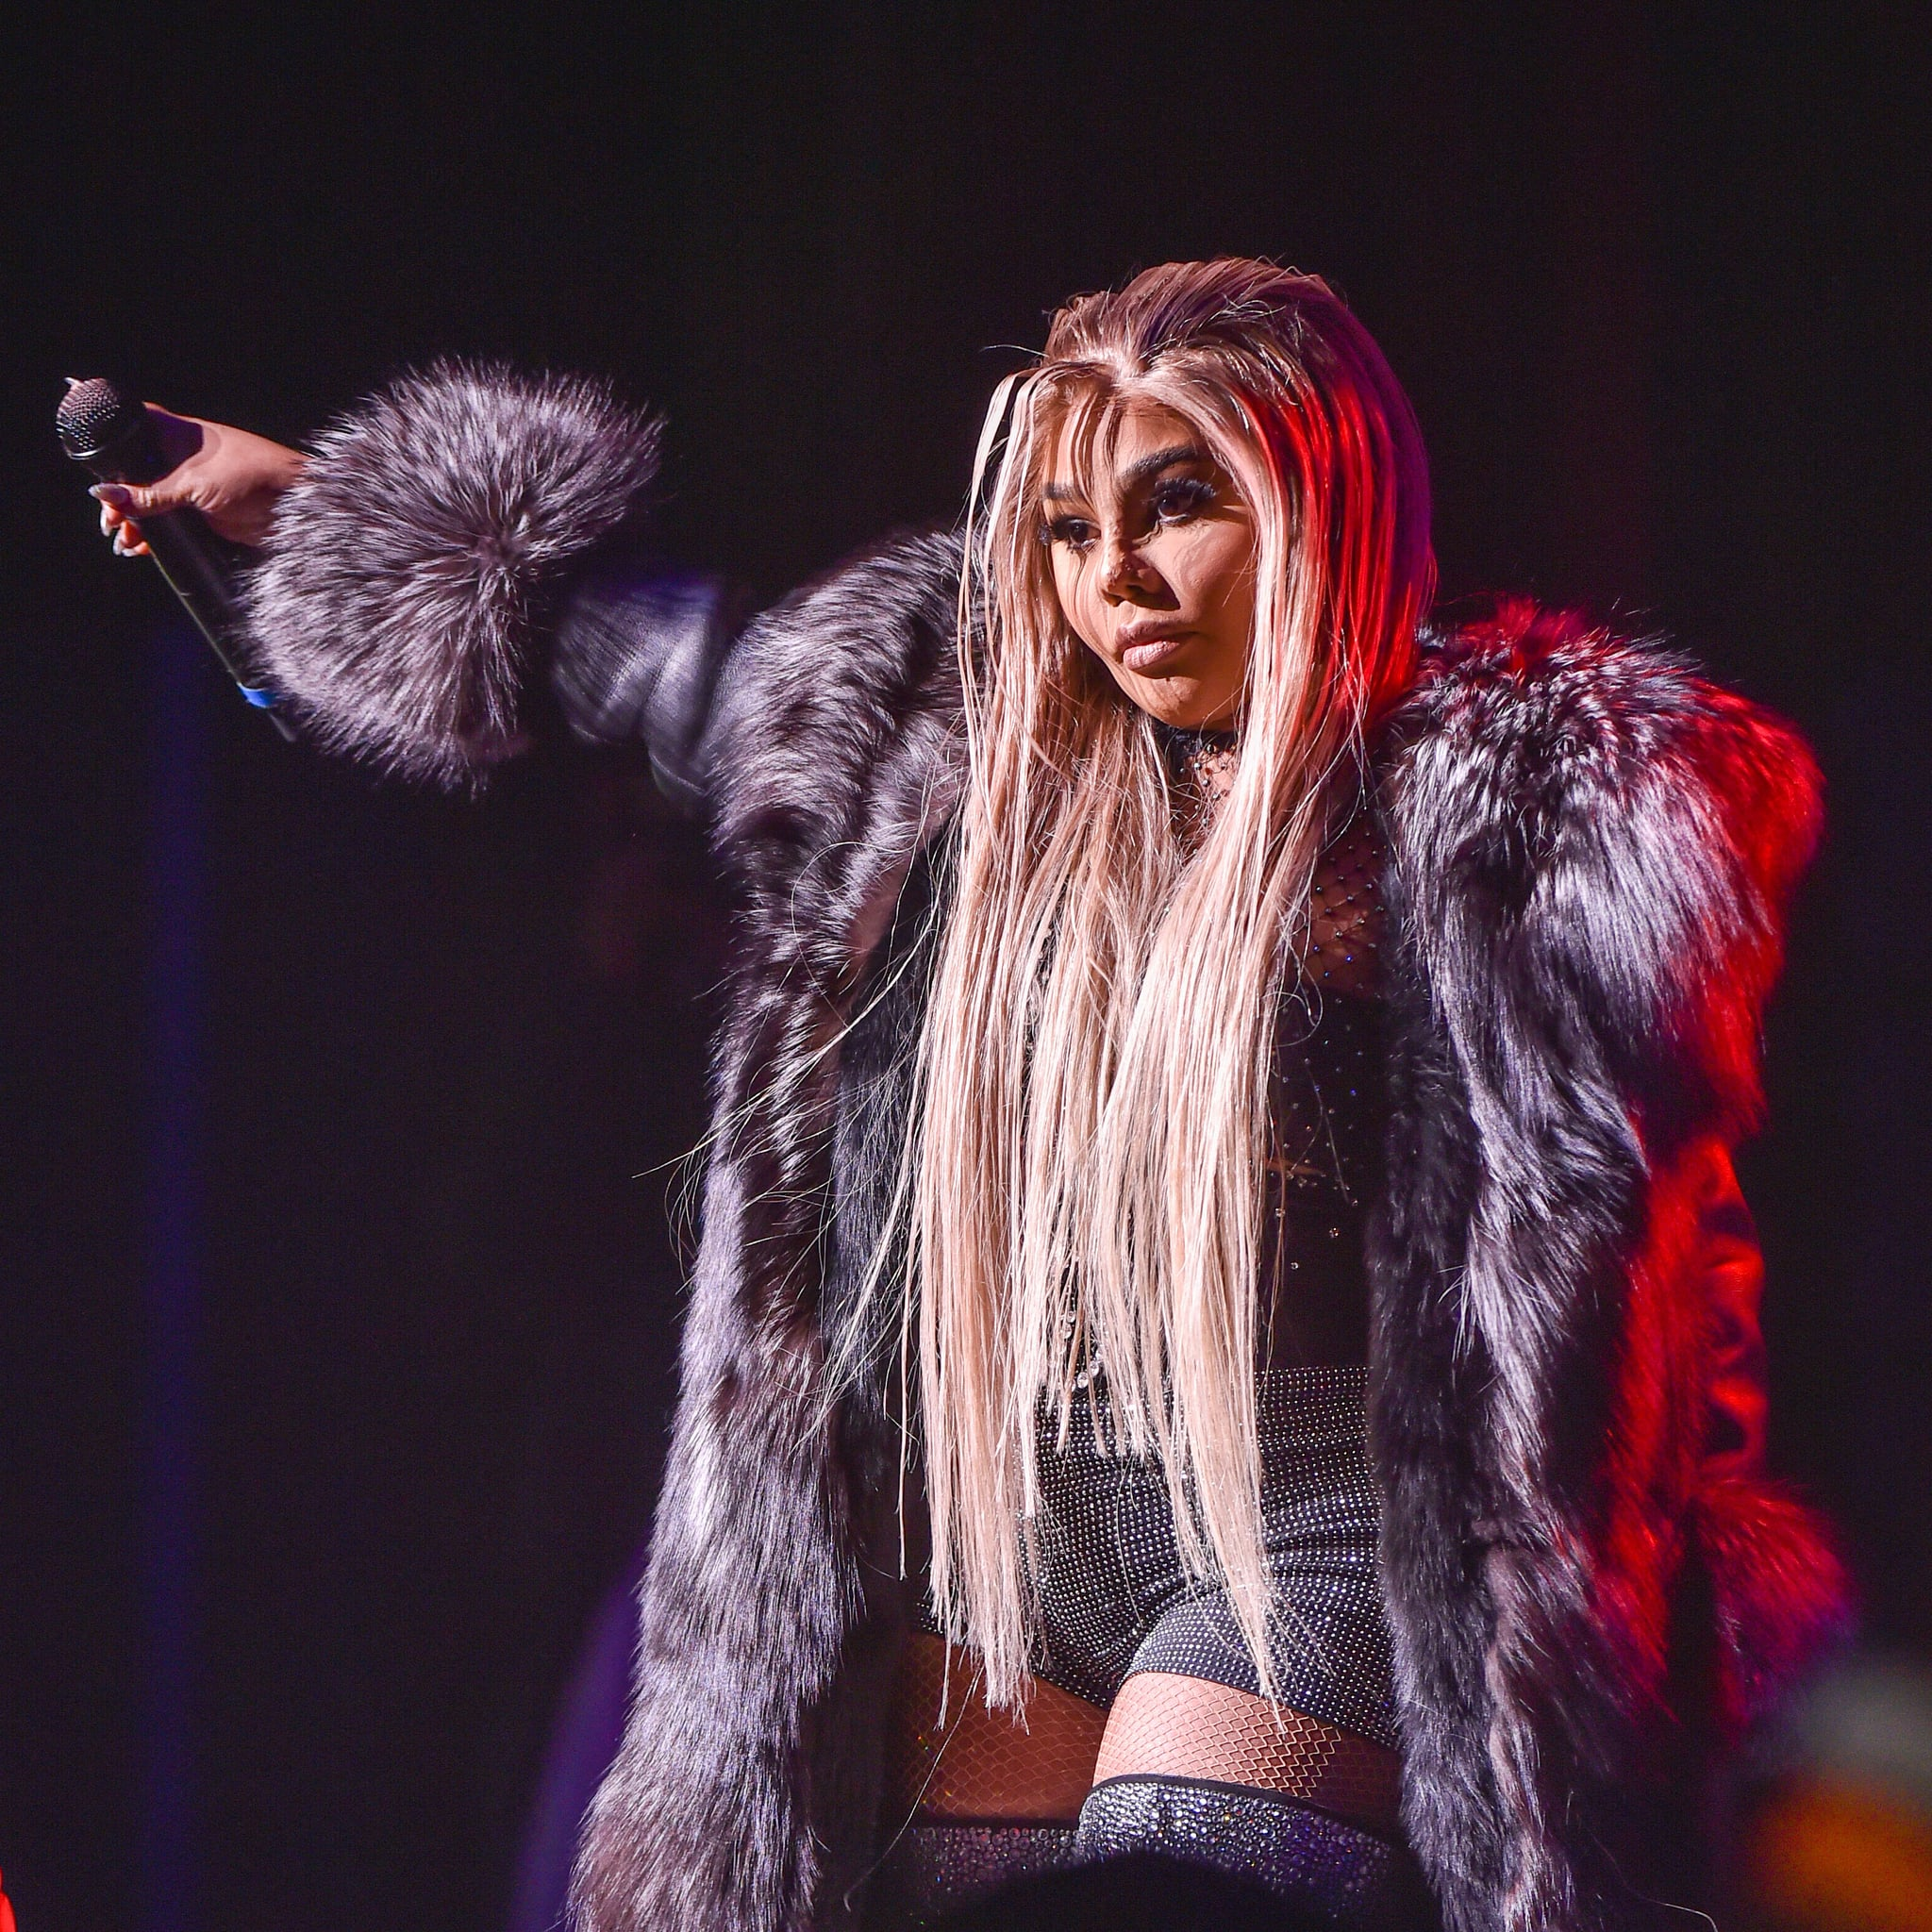 DETROIT, MICHIGAN - JANUARY 18: Recording Artist Lil Kim performs onstage during the Hip Hop Smackdown concert at the Fox Theatre on January 18, 2020 in Detroit, Michigan. (Photo by Aaron J. Thornton/Getty Images)